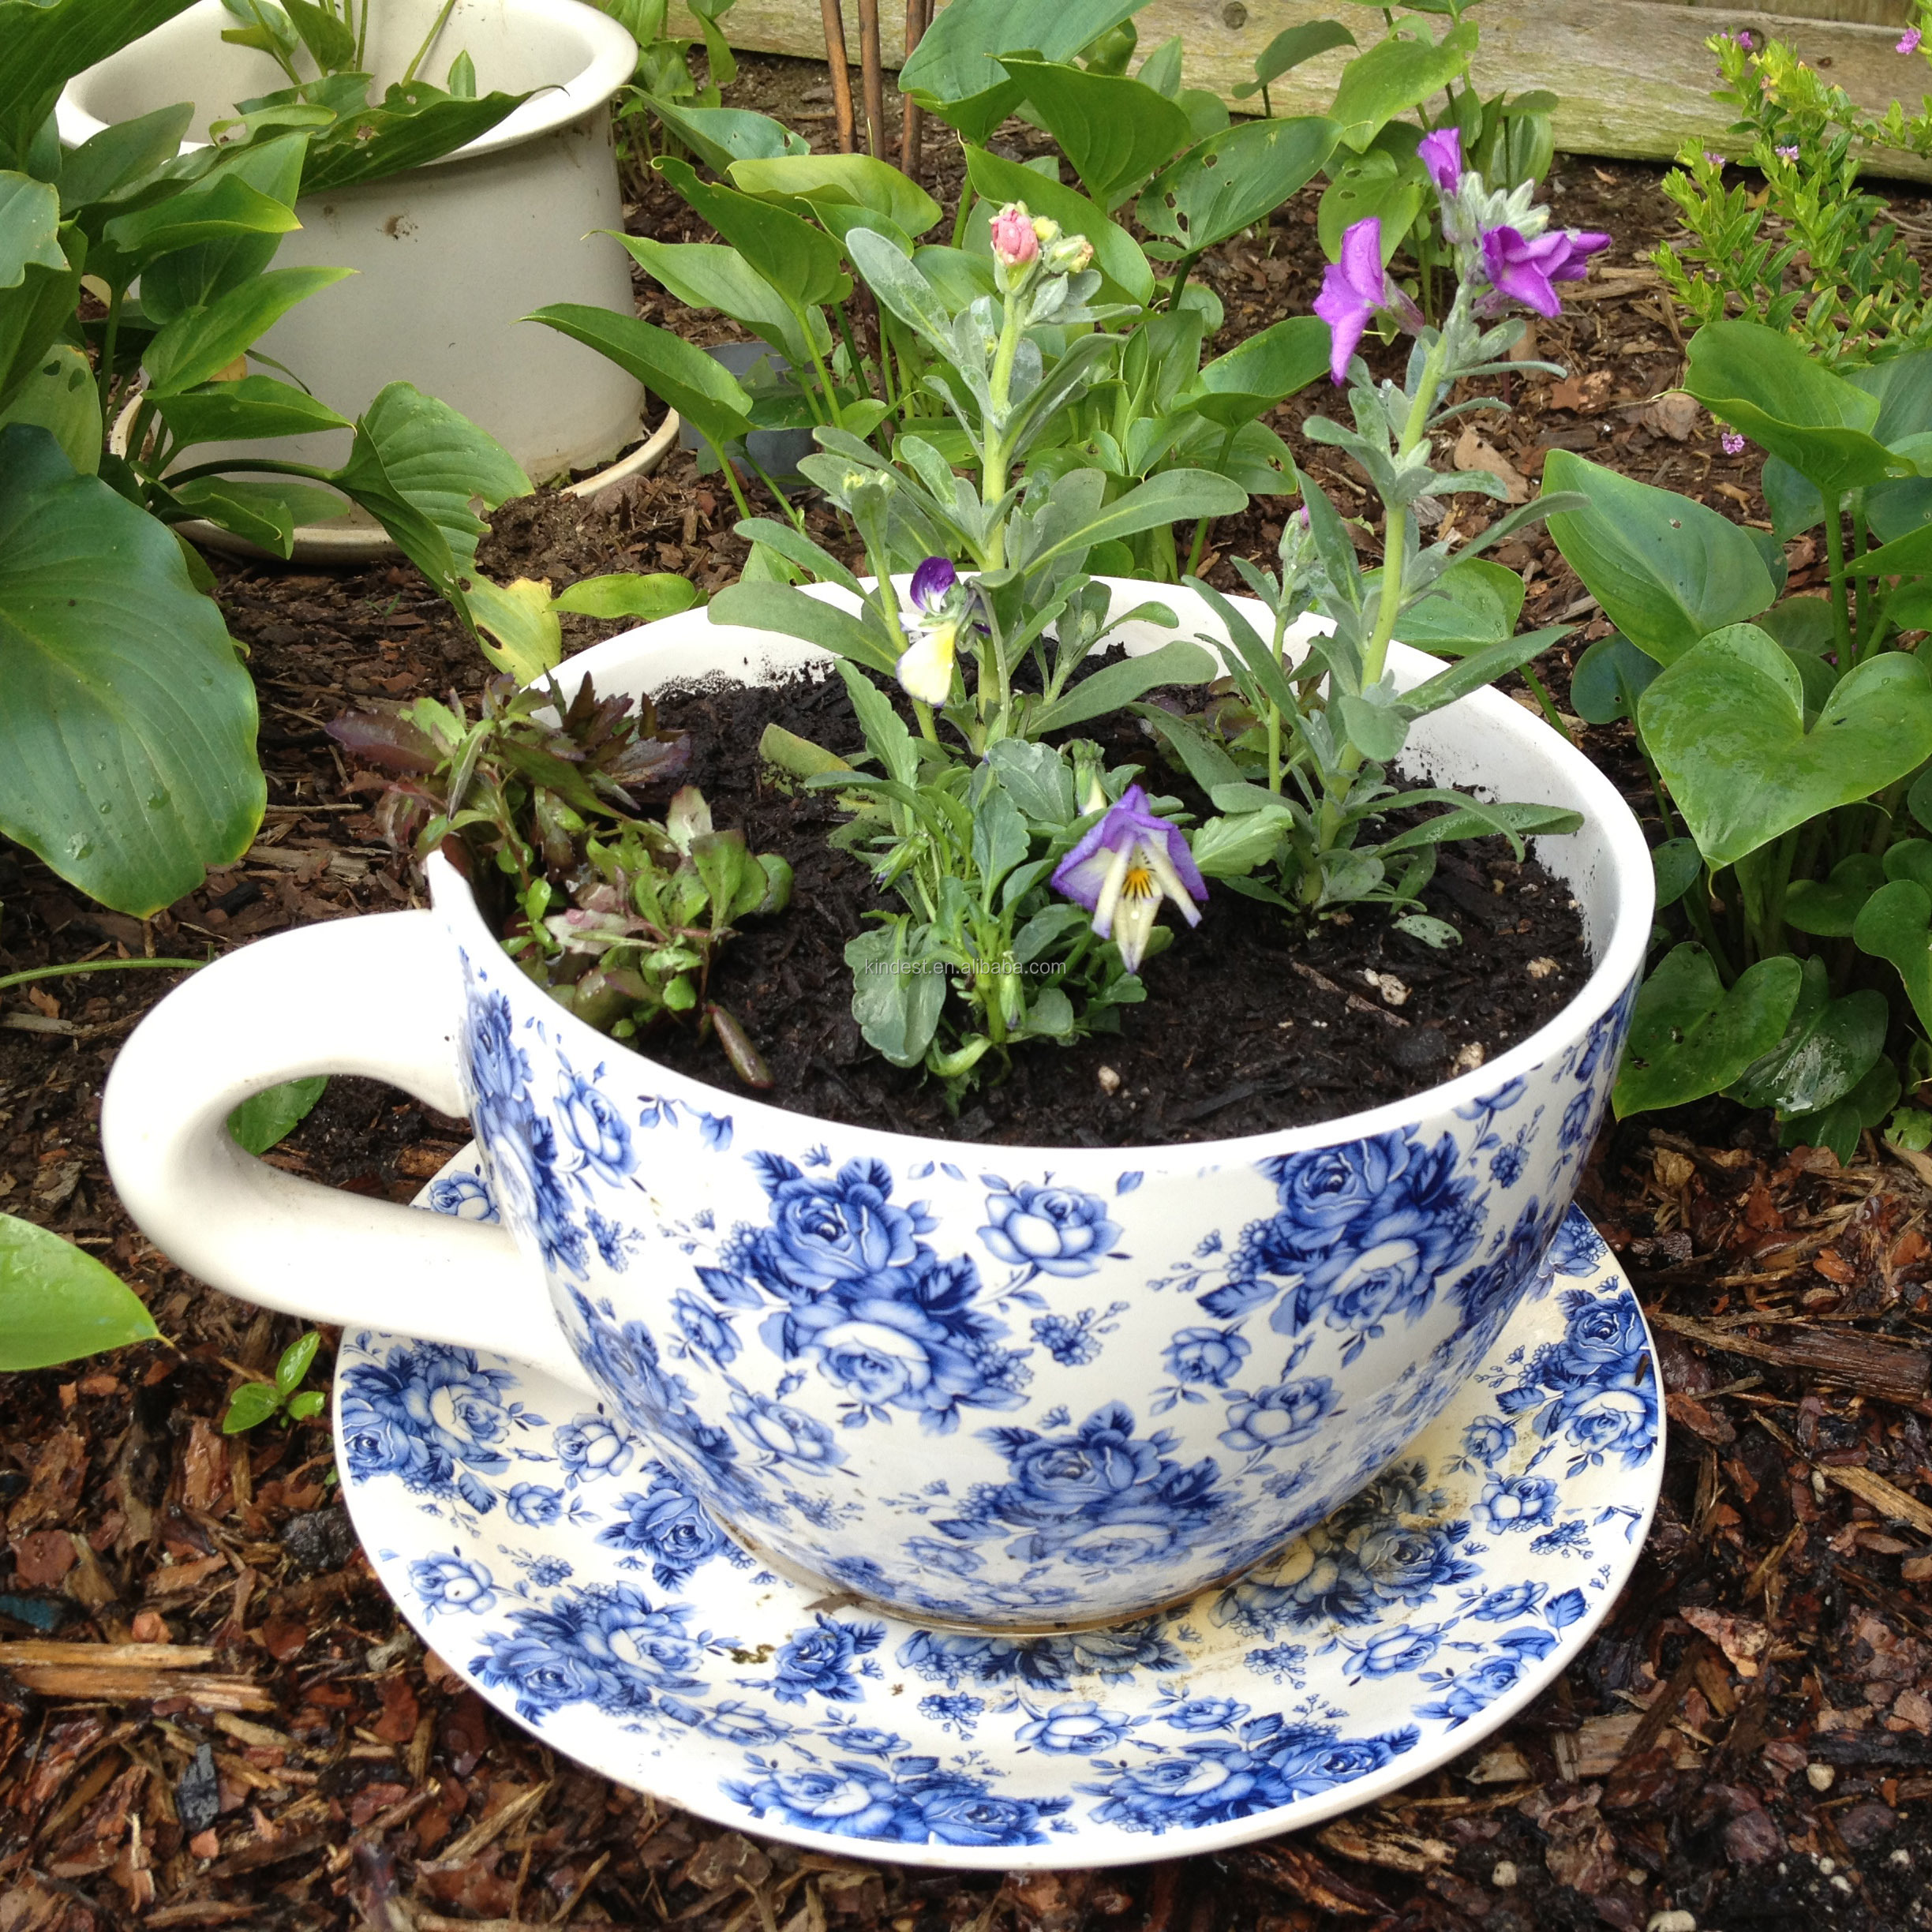 Large Tea Cup Planter Ceramic Tea Cup Garden Flower Planter Large Teacup Decorative Outdoor Ceramic Flower Pot Buy Tea Cup Garden Planter Large Teacup Decorative Outdoor